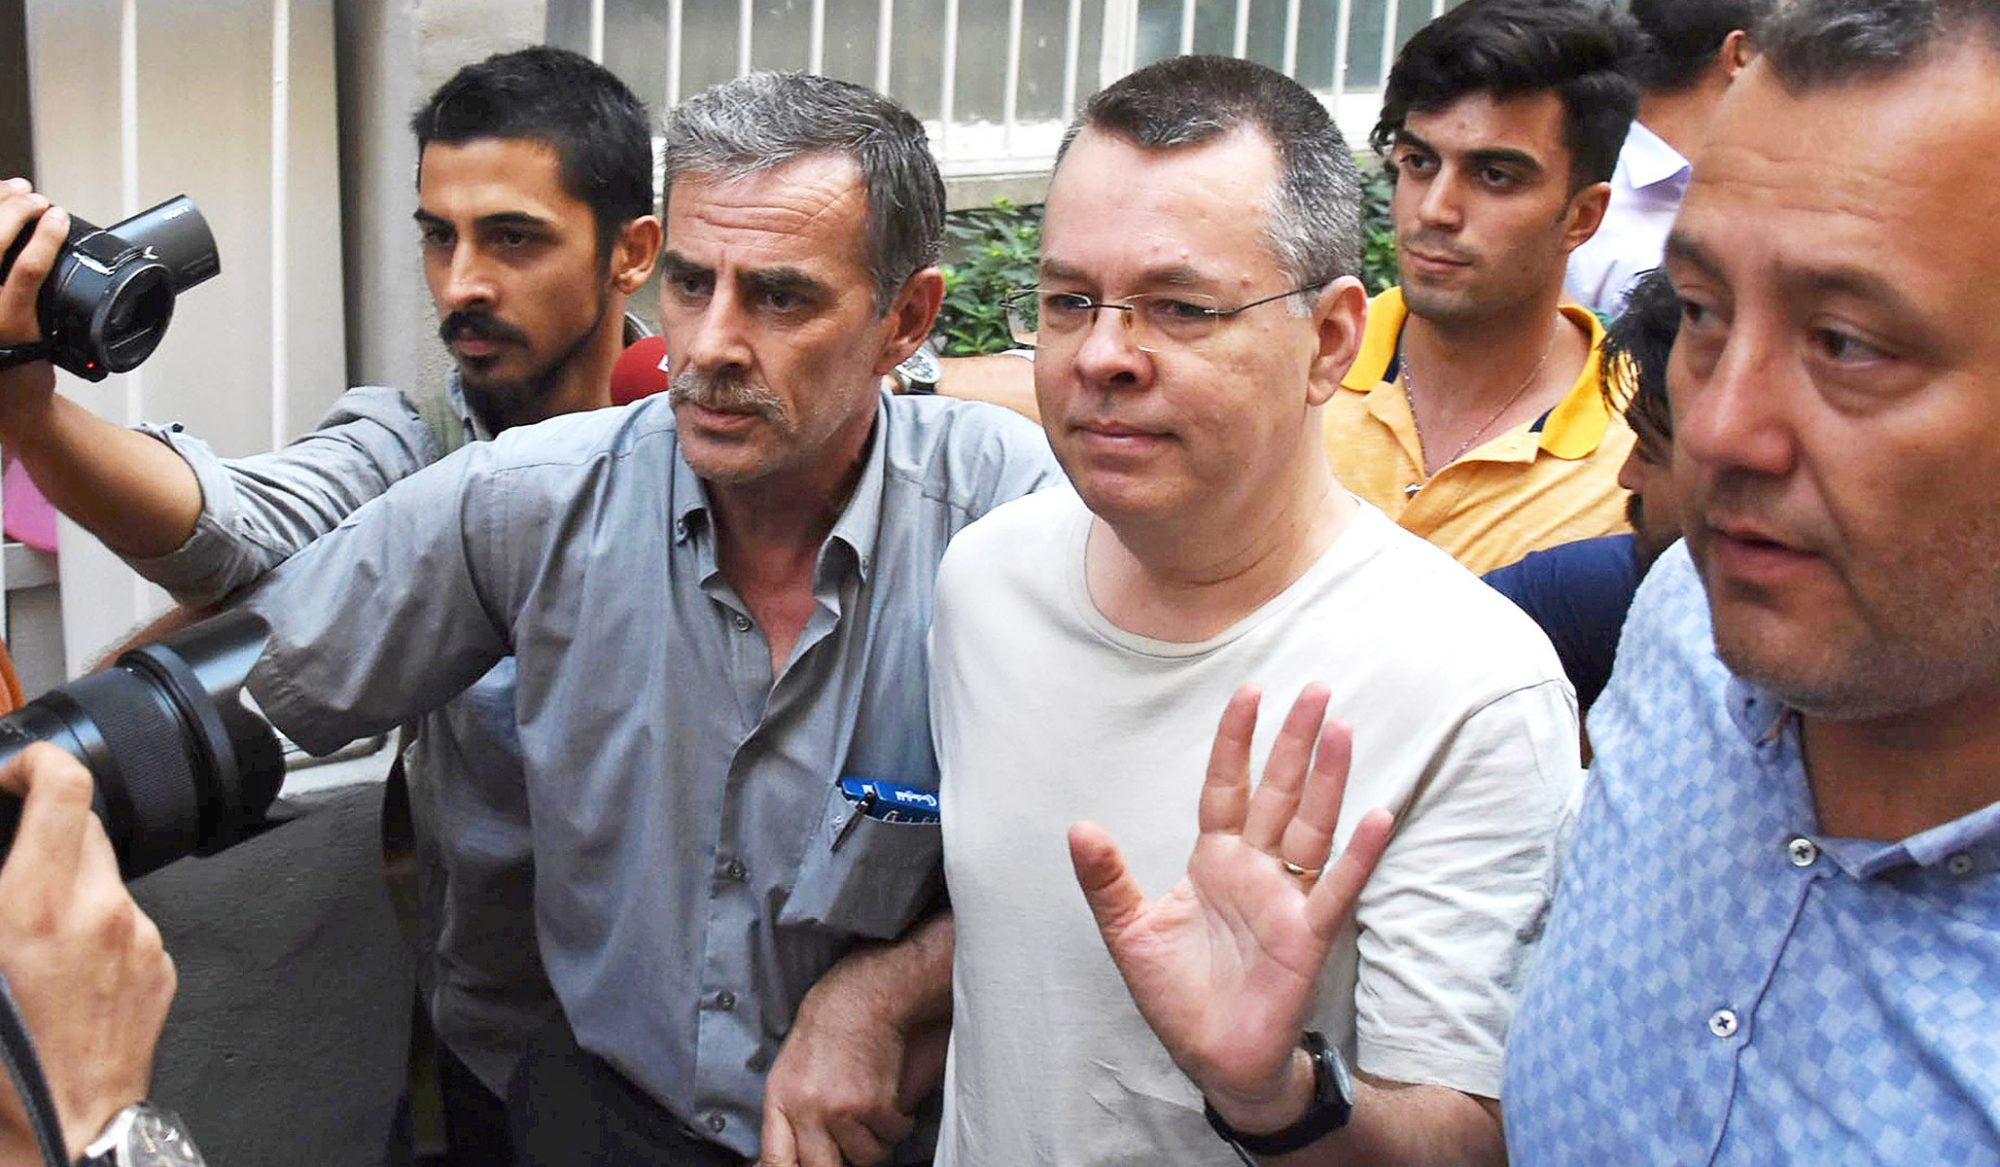 Pastor Brunson denied release as Turkish court rejects his appeal again